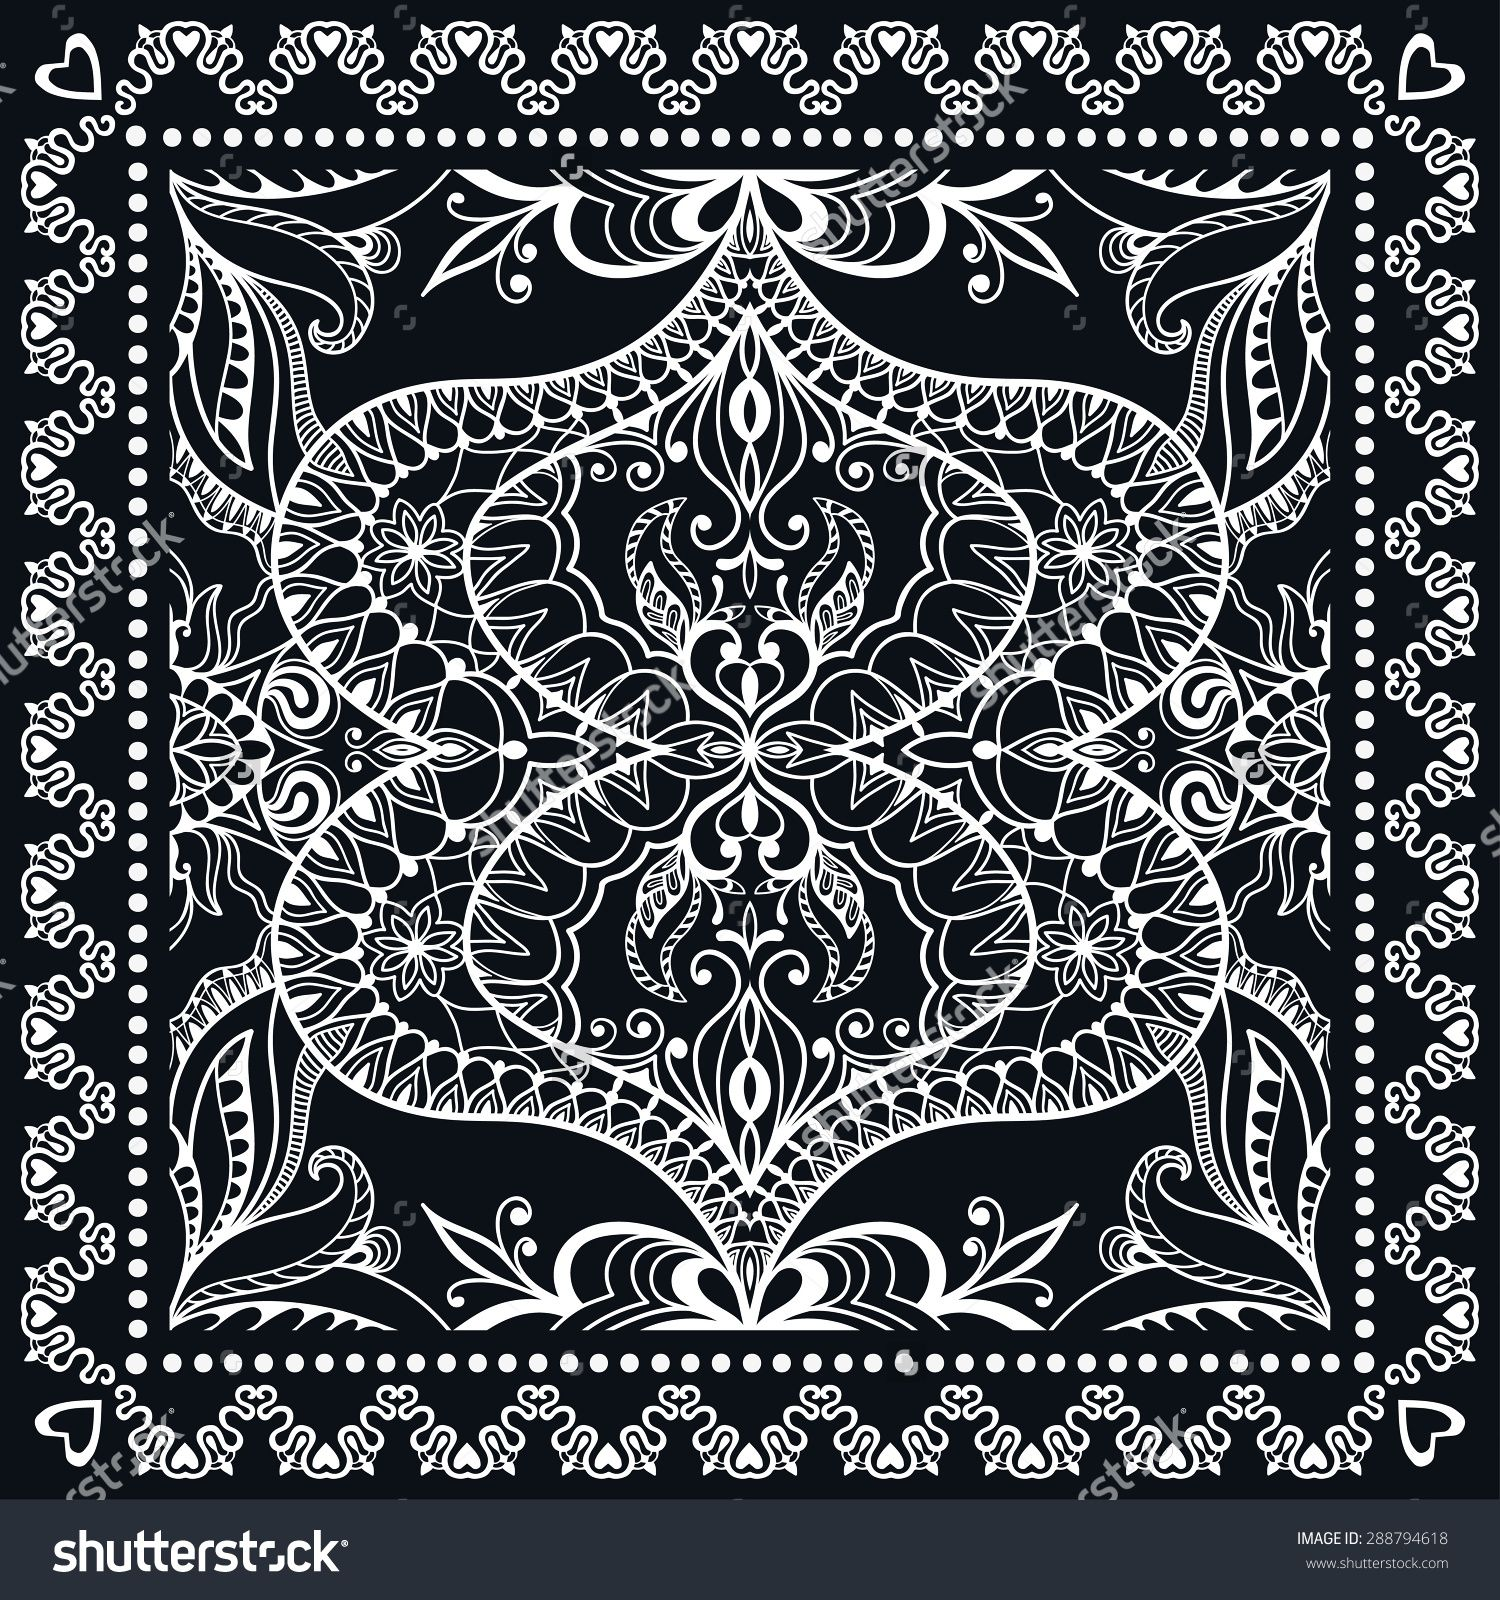 stock-vector-black-bandana-print-silk-neck-scarf-or ...